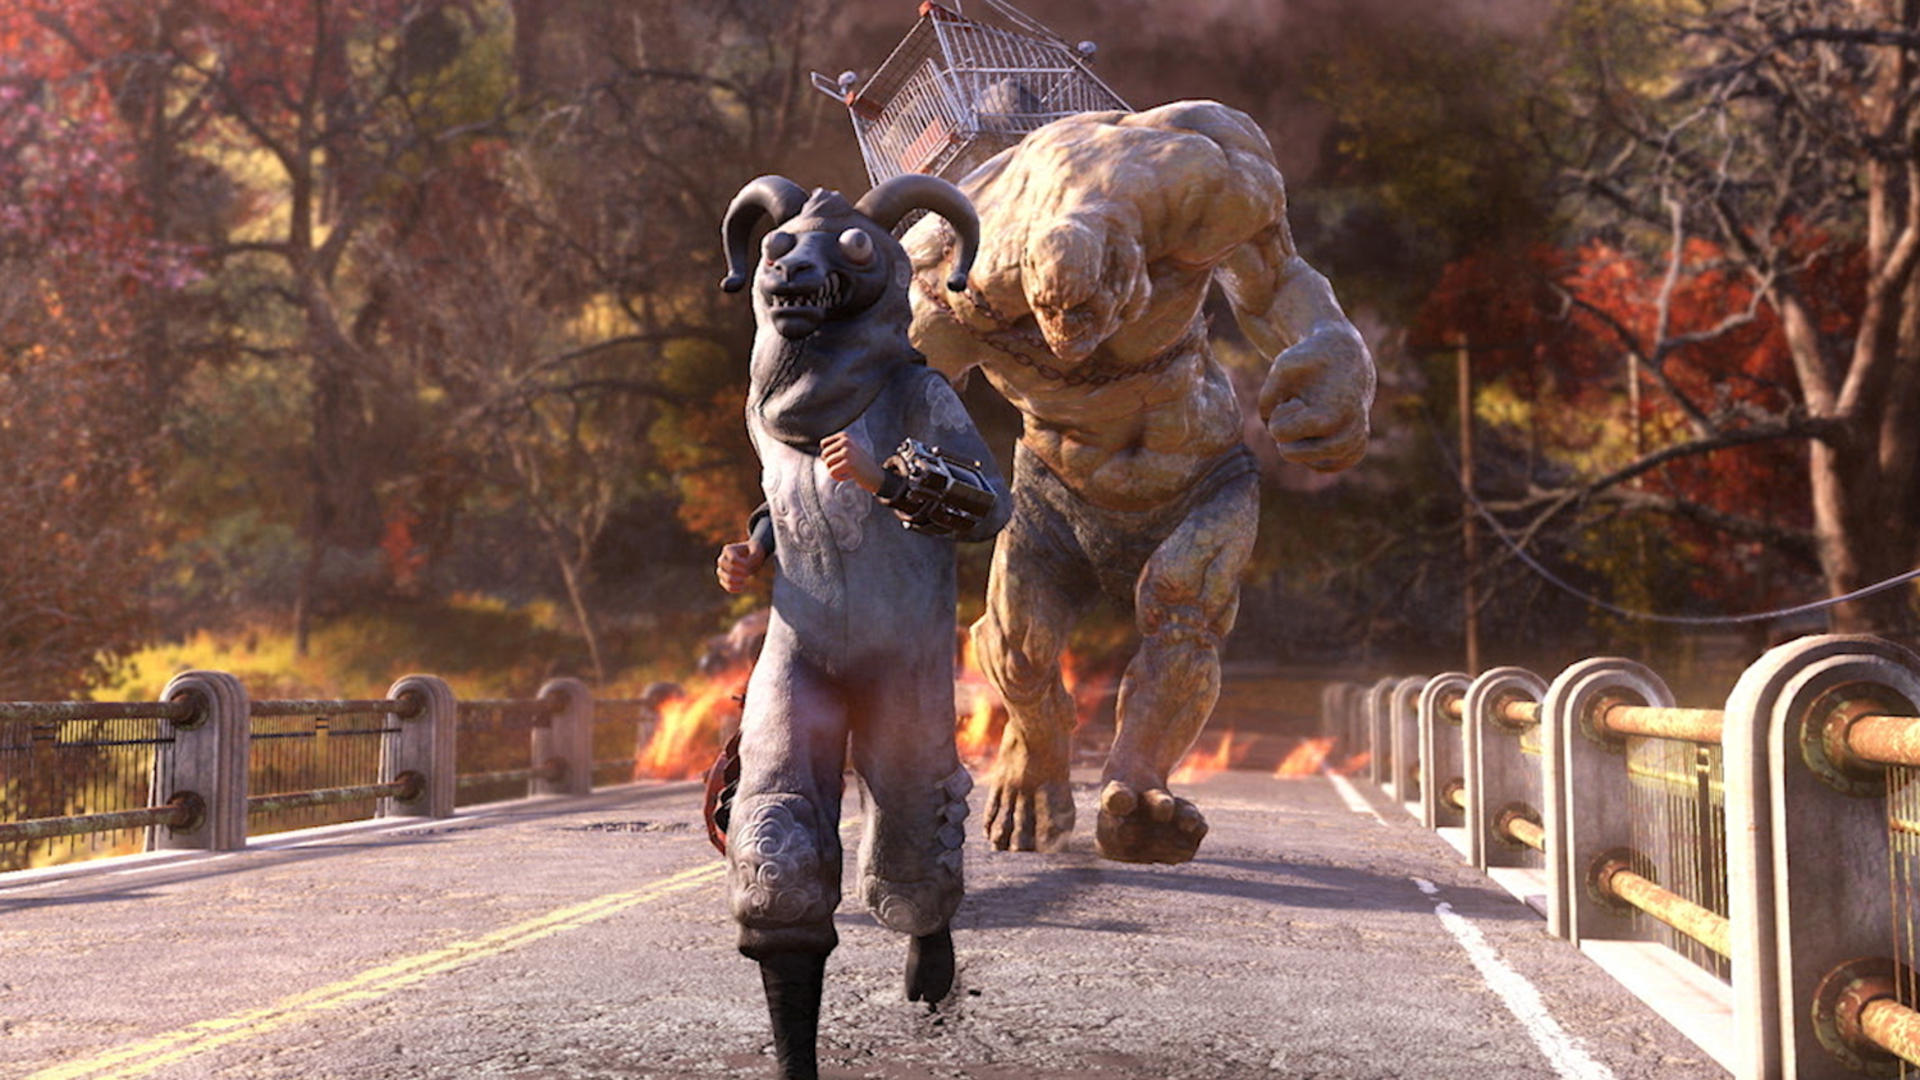 Fallout 76 News – MAJOR New Bug, Player Count Issue, New Update Details, Bug Fixes